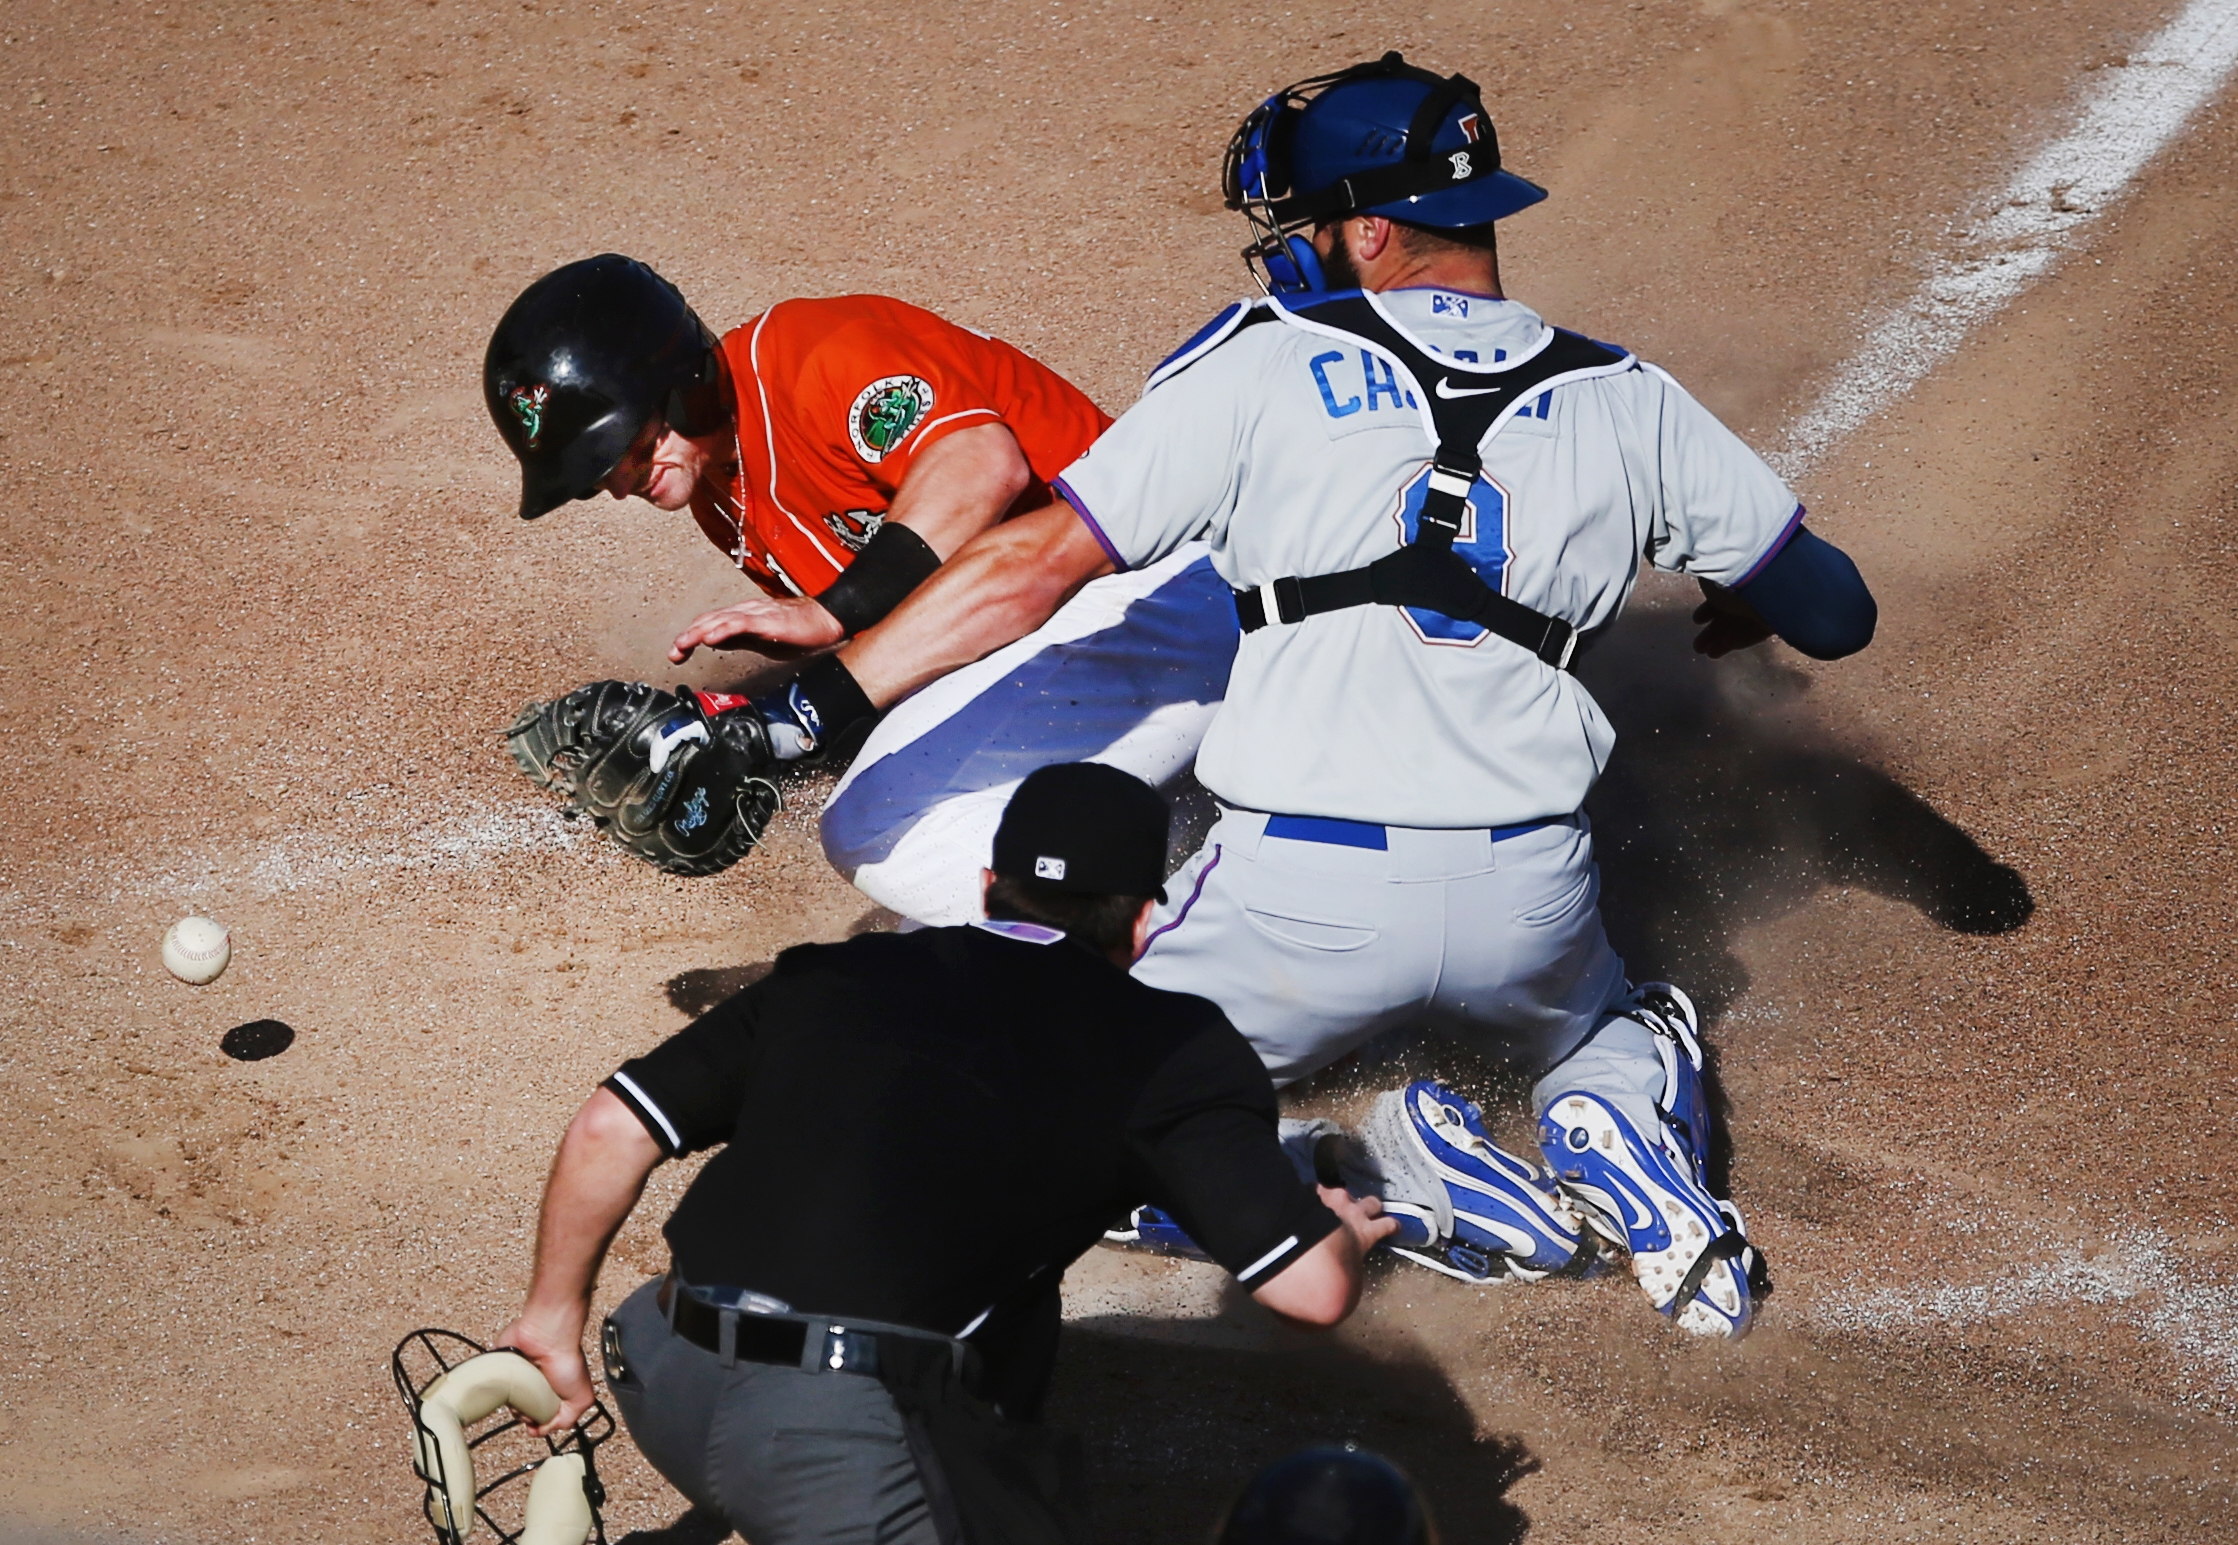 Norfolk's Johnny Giavotella scores the winning run on a 4-3 12th inning walk off double by teammate Mike Yastrzemski as Durham catcher Curt Casali can't corral the the ball, Sunday, May 7, 2017 at Harbor Park in Norfolk.